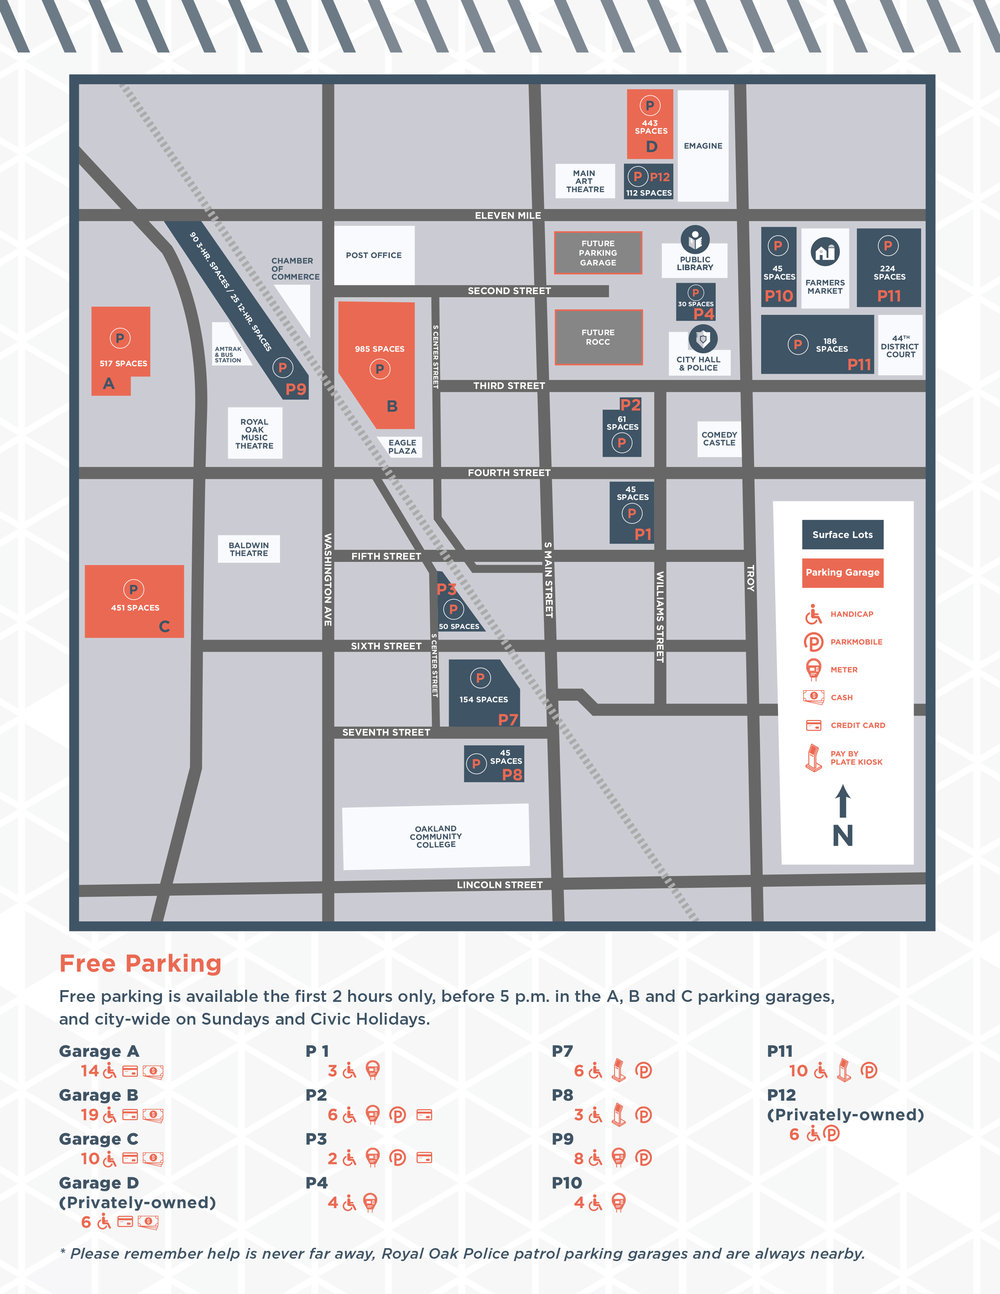 Royal Oak Parking Guide-2.jpg